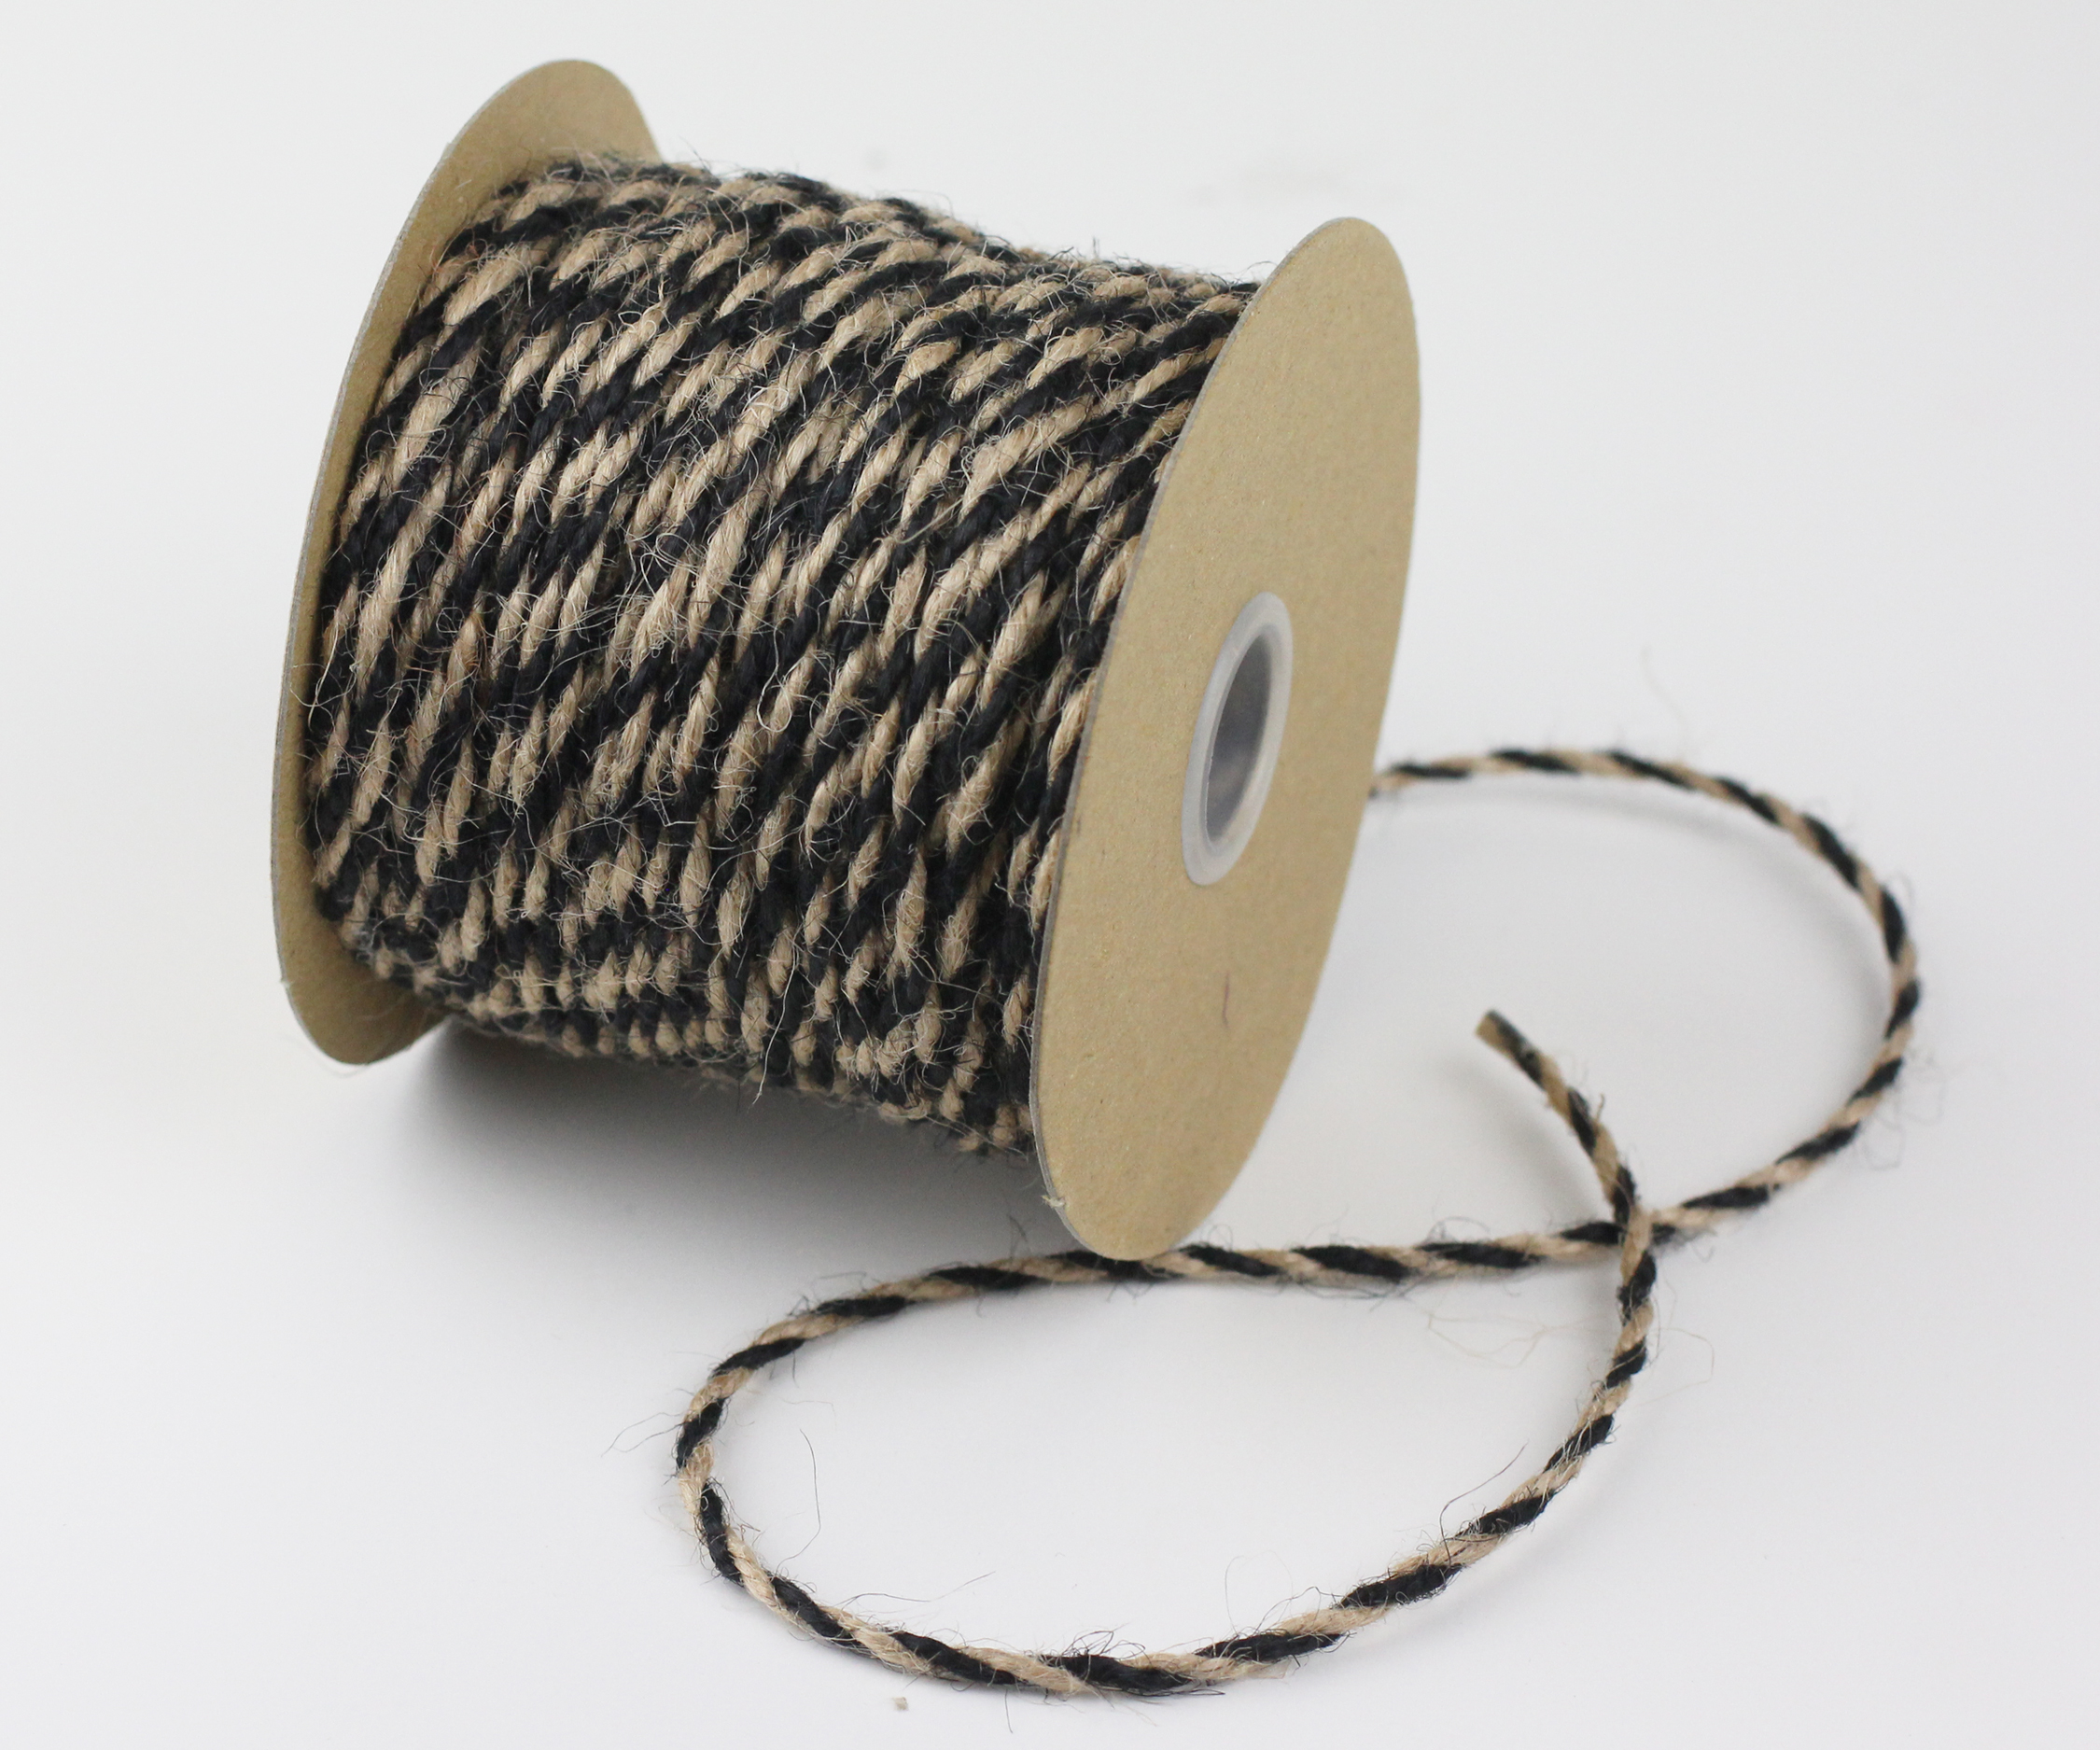 Black/Natural Jute Twine - 2.5mm x 50 Yards